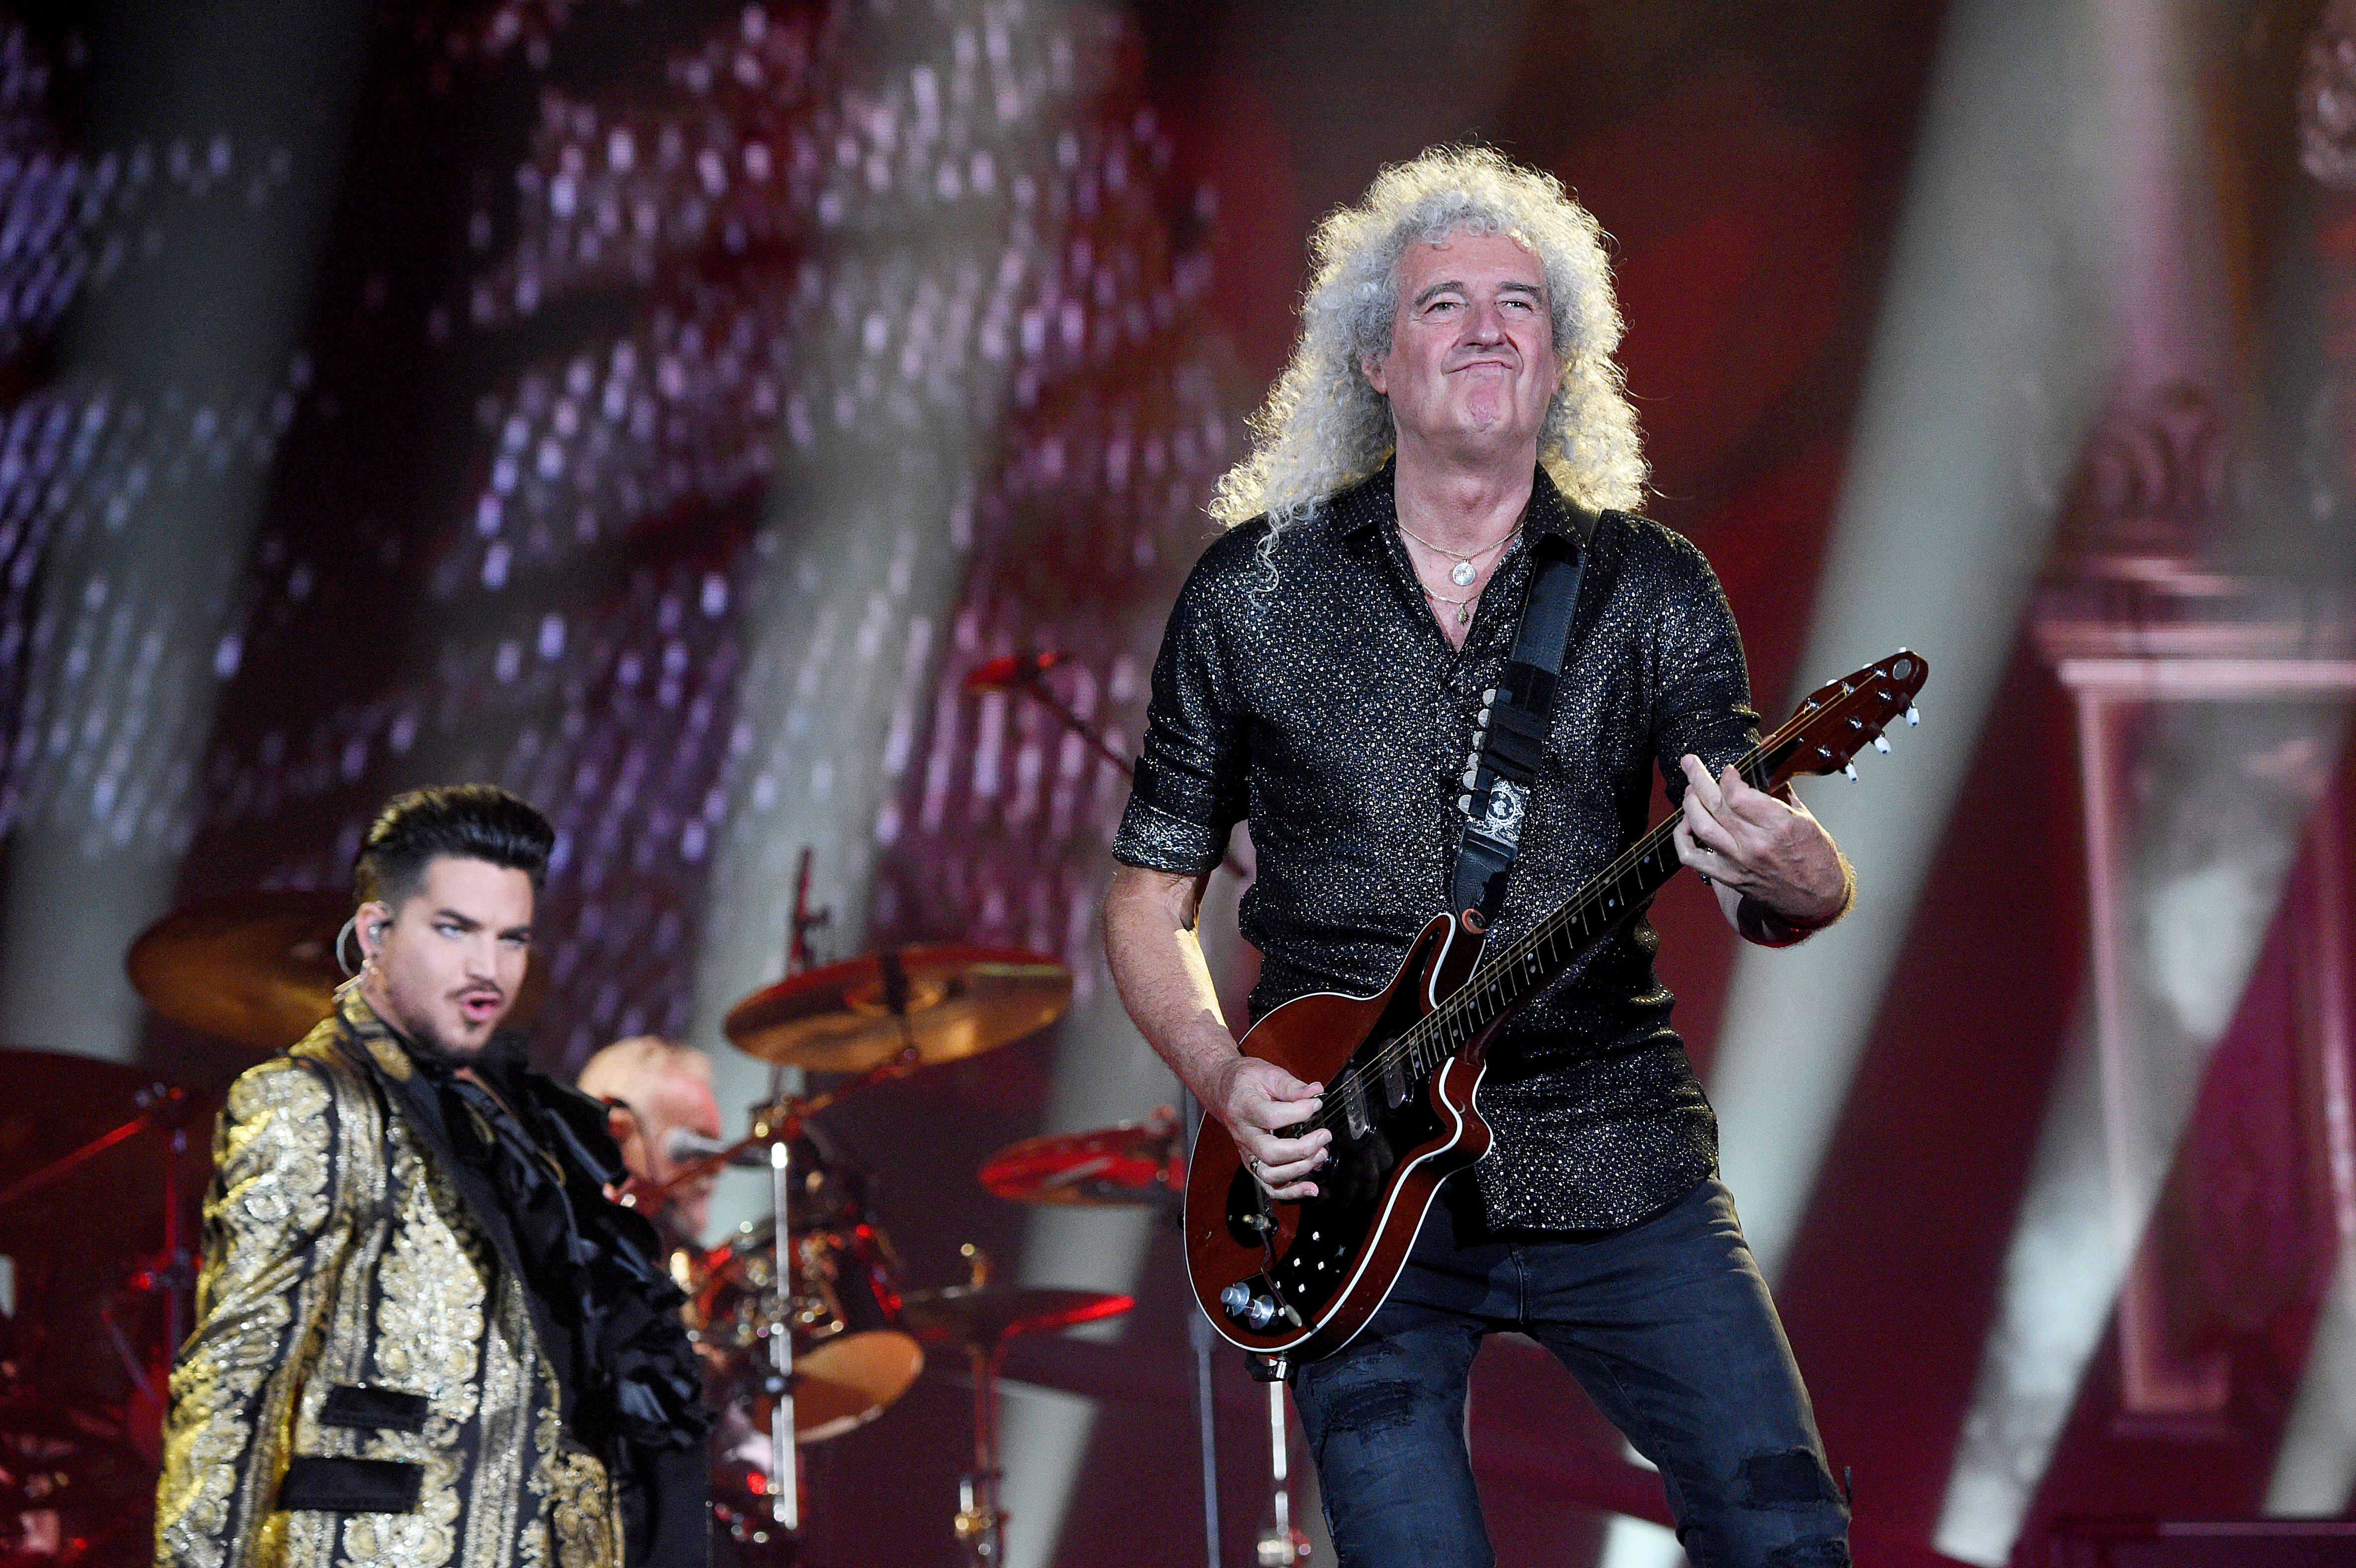 NEW YORK, NEW YORK - SEPTEMBER 28: Adam Lambert and Brian May of Queen perform onstage during the 2019 Global Citizen Festival: Power The Movement in Central Park on September 28, 2019 in New York City. (Photo by Kevin Mazur/Getty Images for Global Citizen)